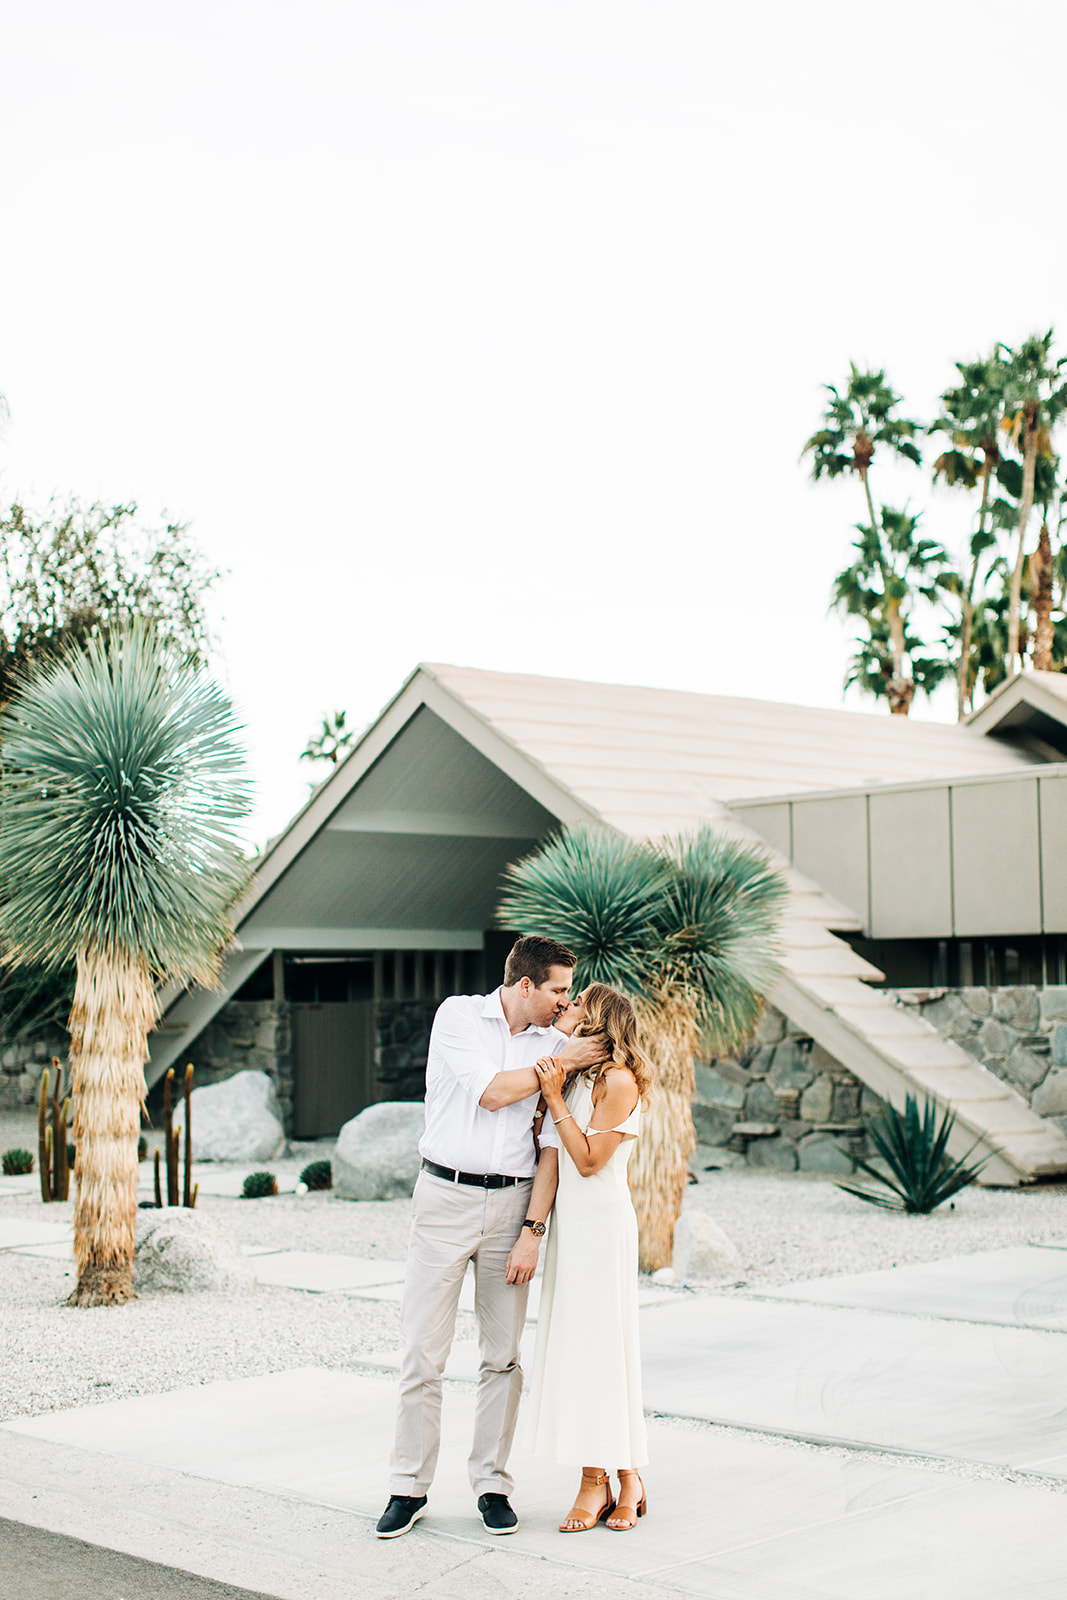 Paulina-Drew_Palm-Springs-Engagement-Photos_Clarisse-Rae_Southern-California-Wedding-Photographer-40